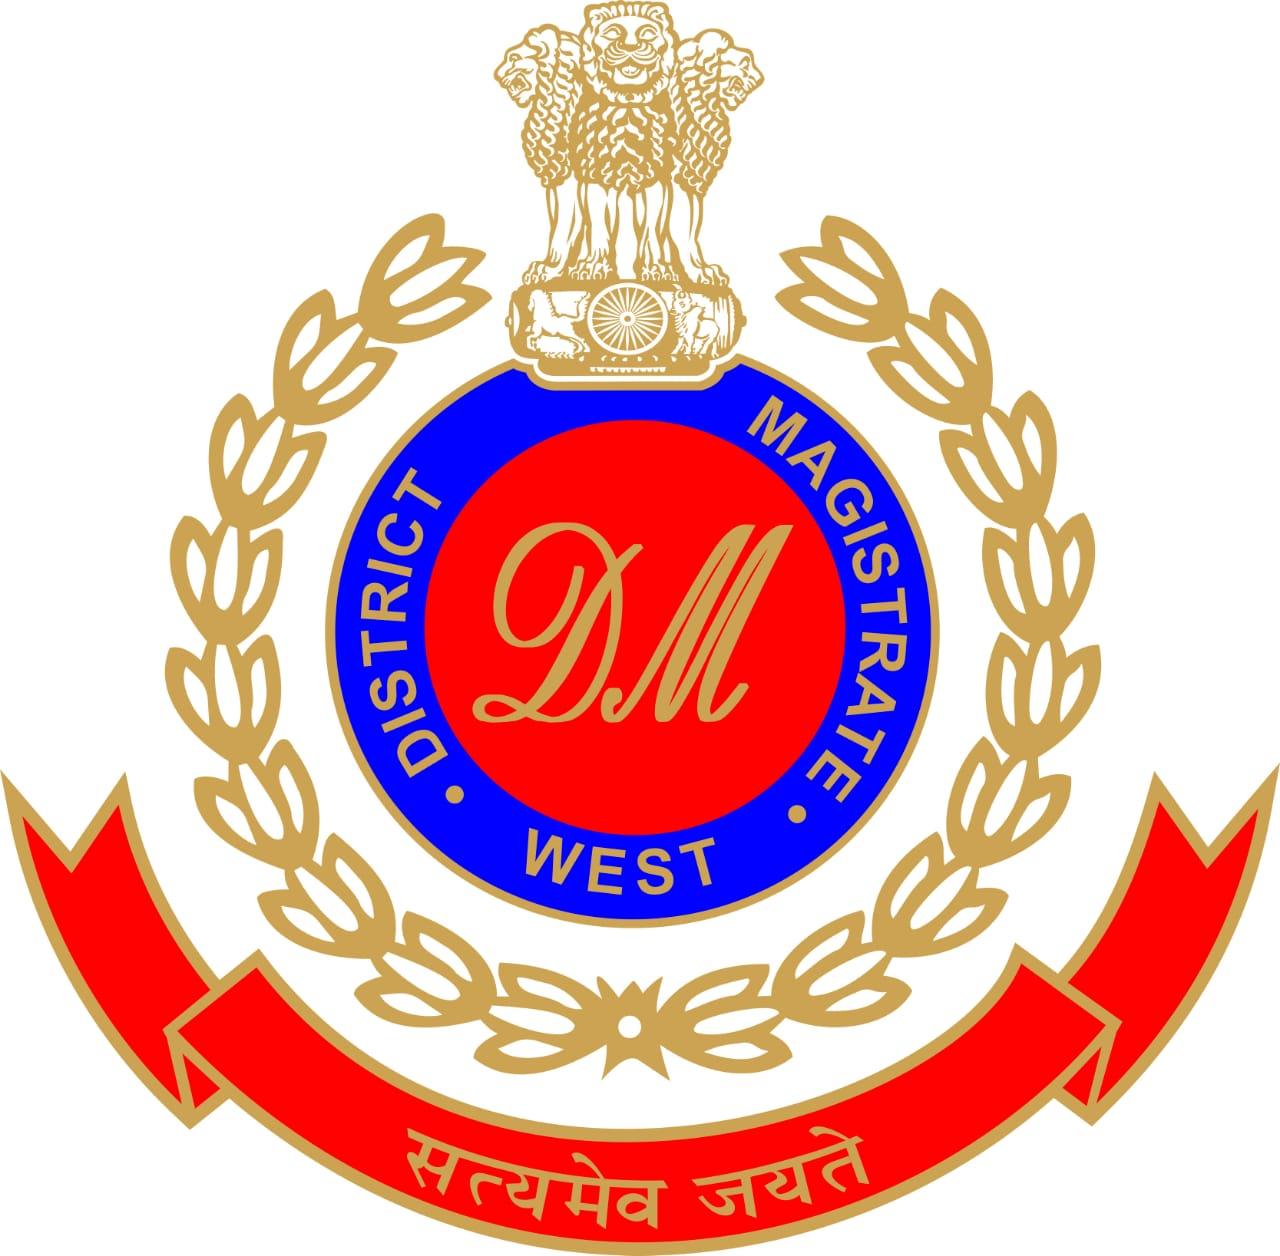 DM-west-logo.jpg